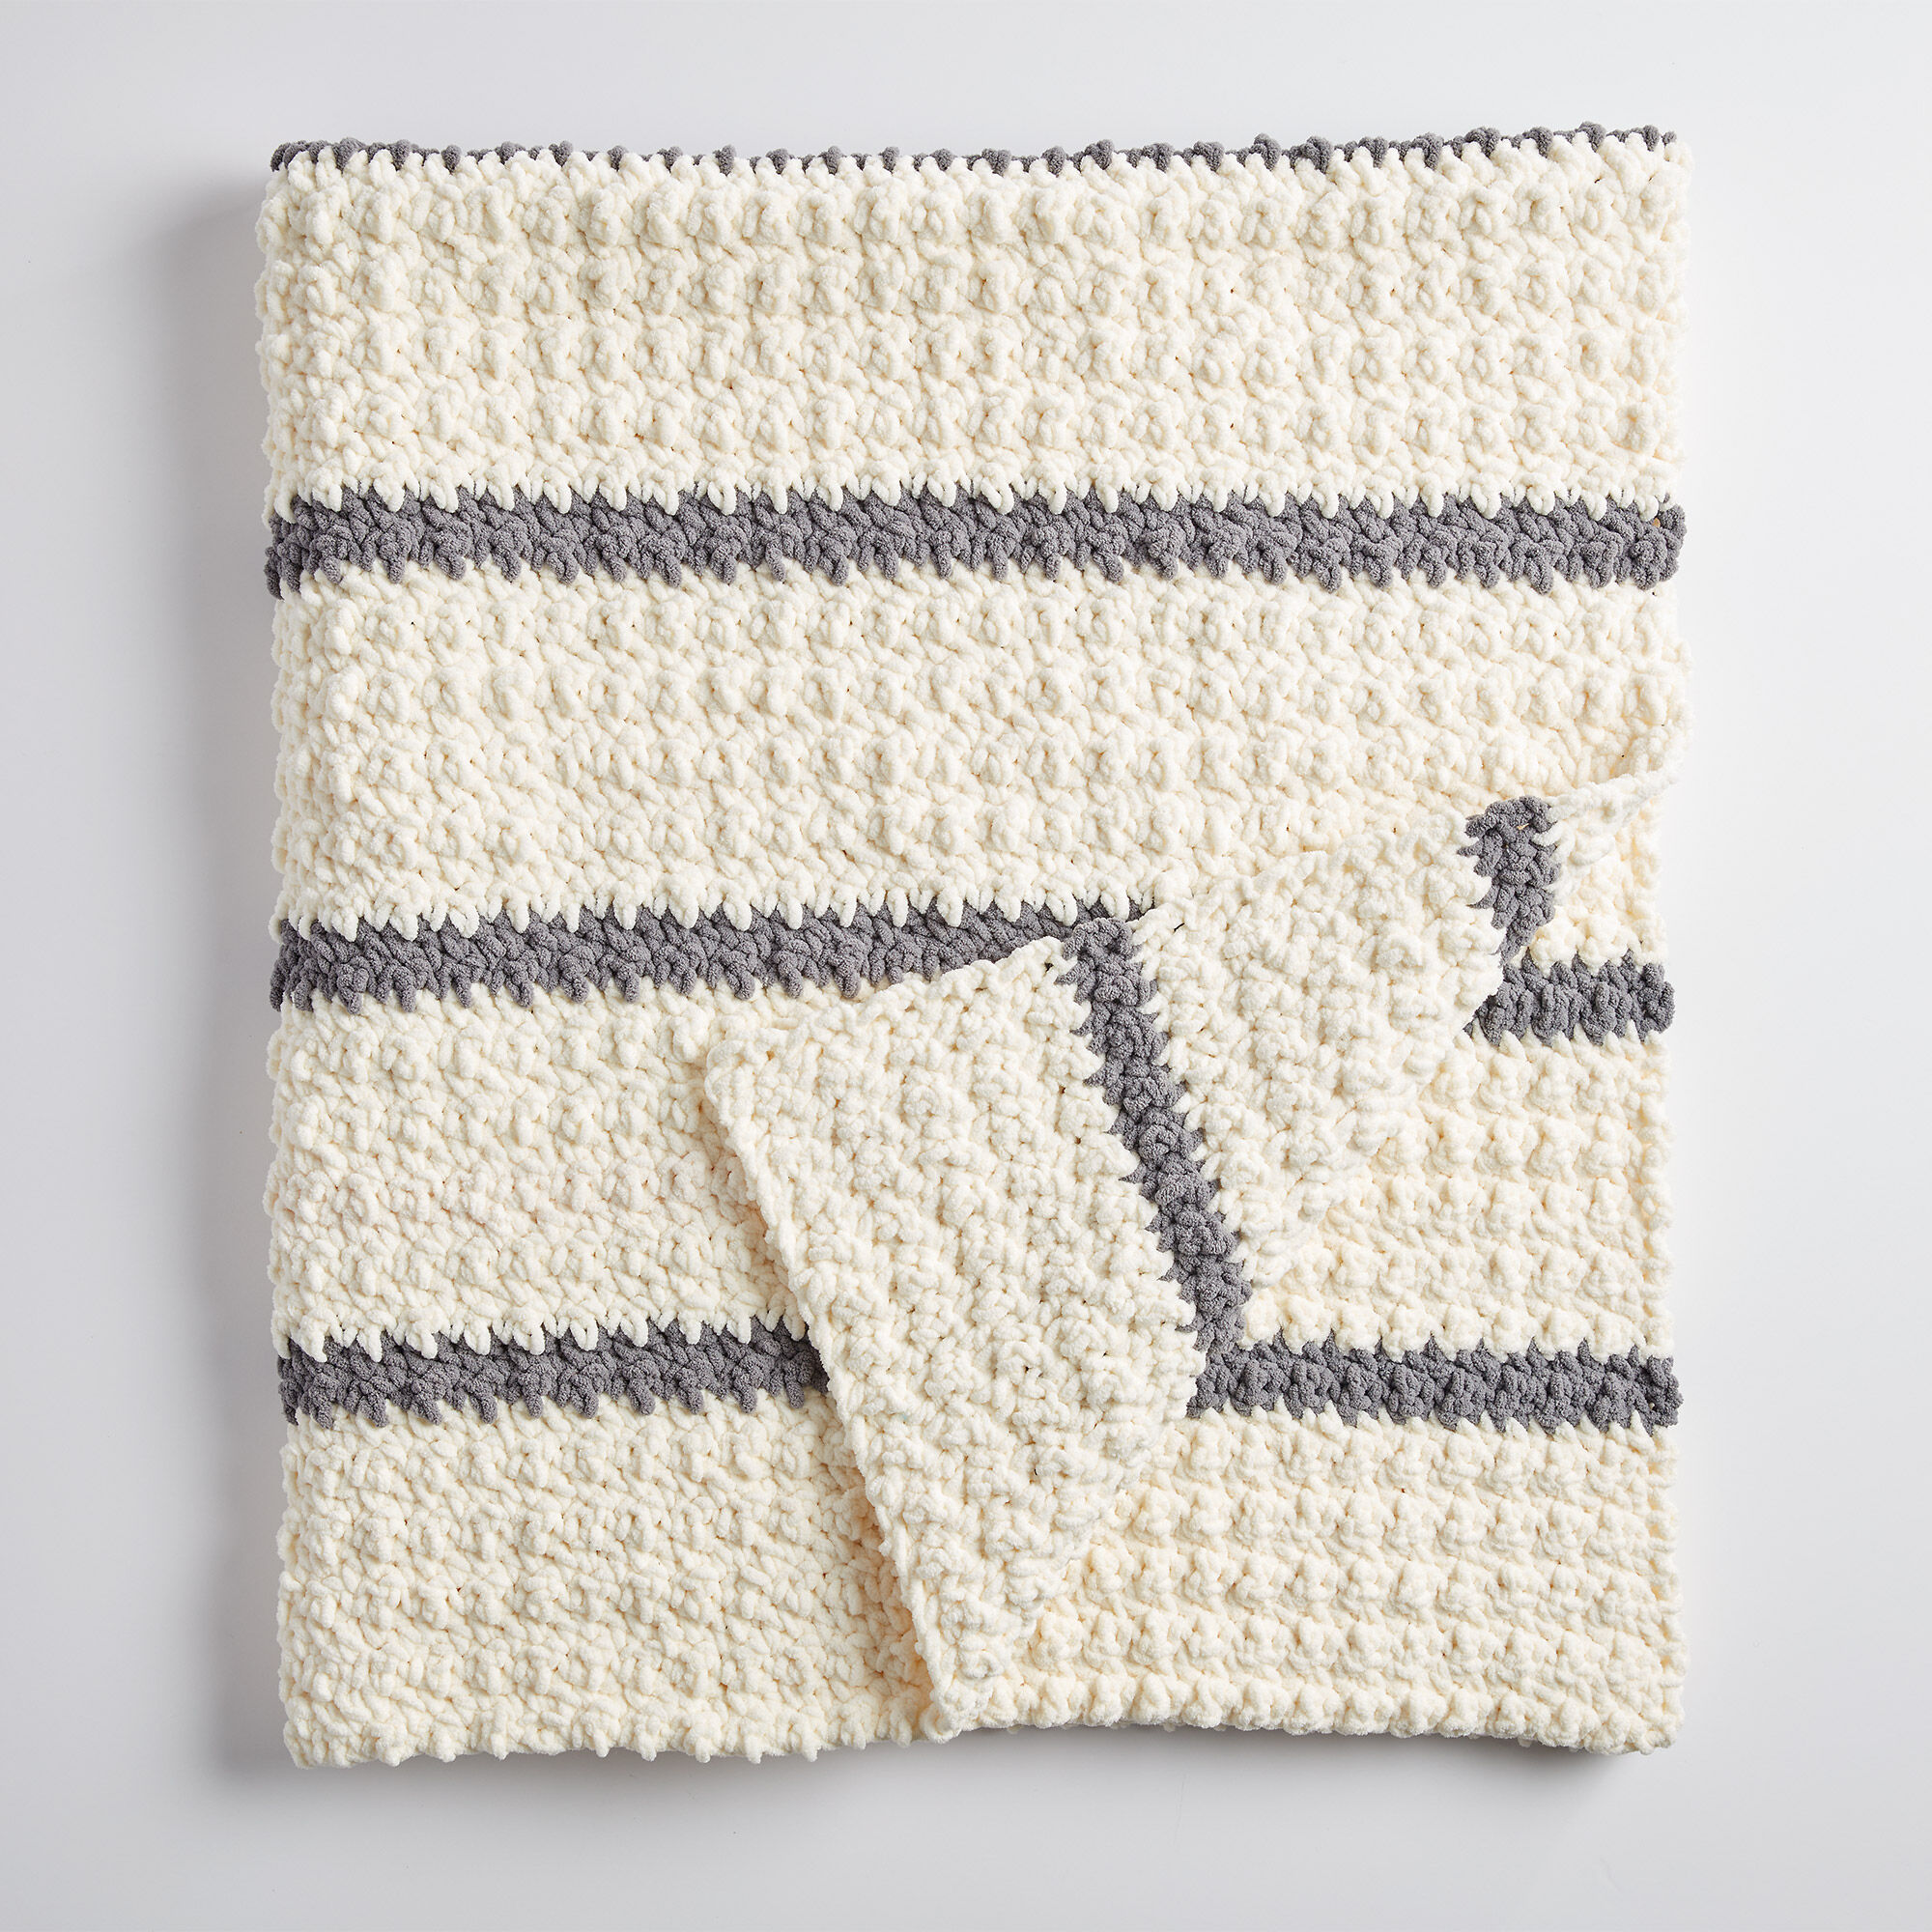 Bernat Pin Stripe Crochet Blanket | Yarnspirations